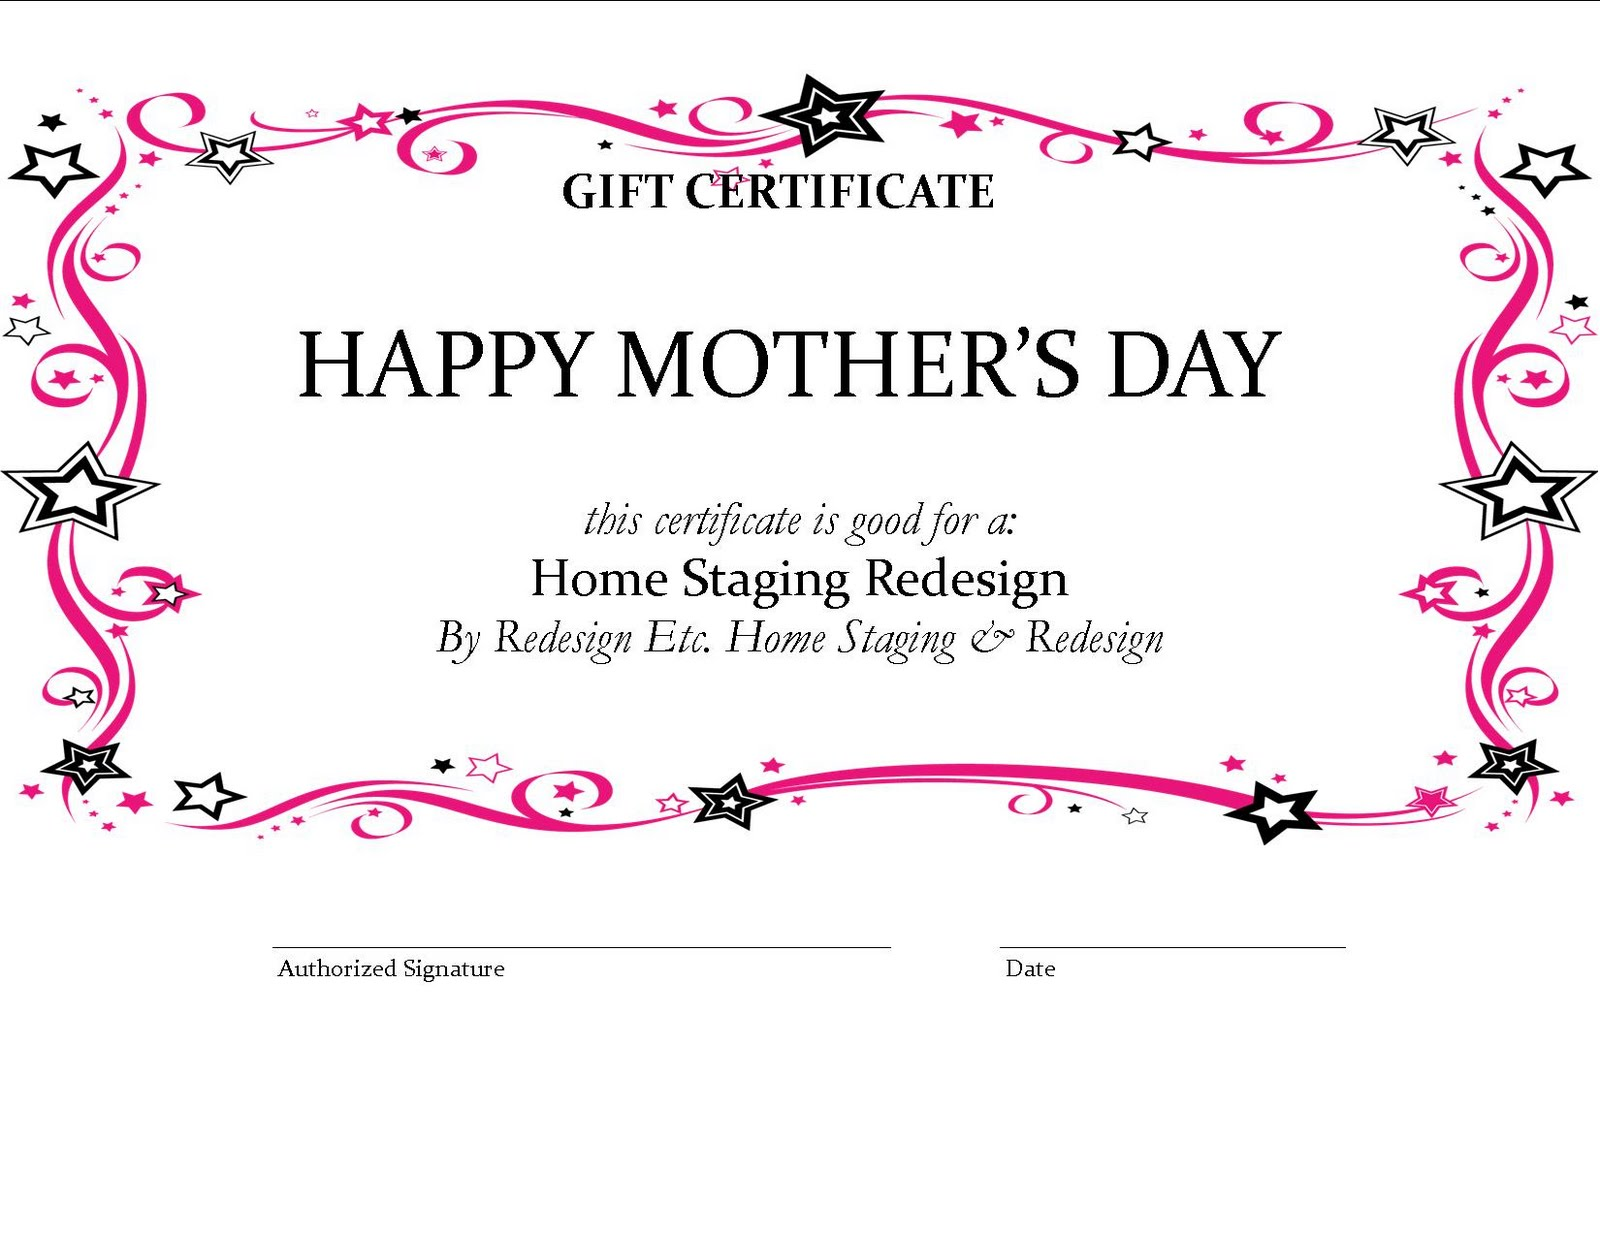 house cleaning gift certificate template – Printable Gift Voucher Template